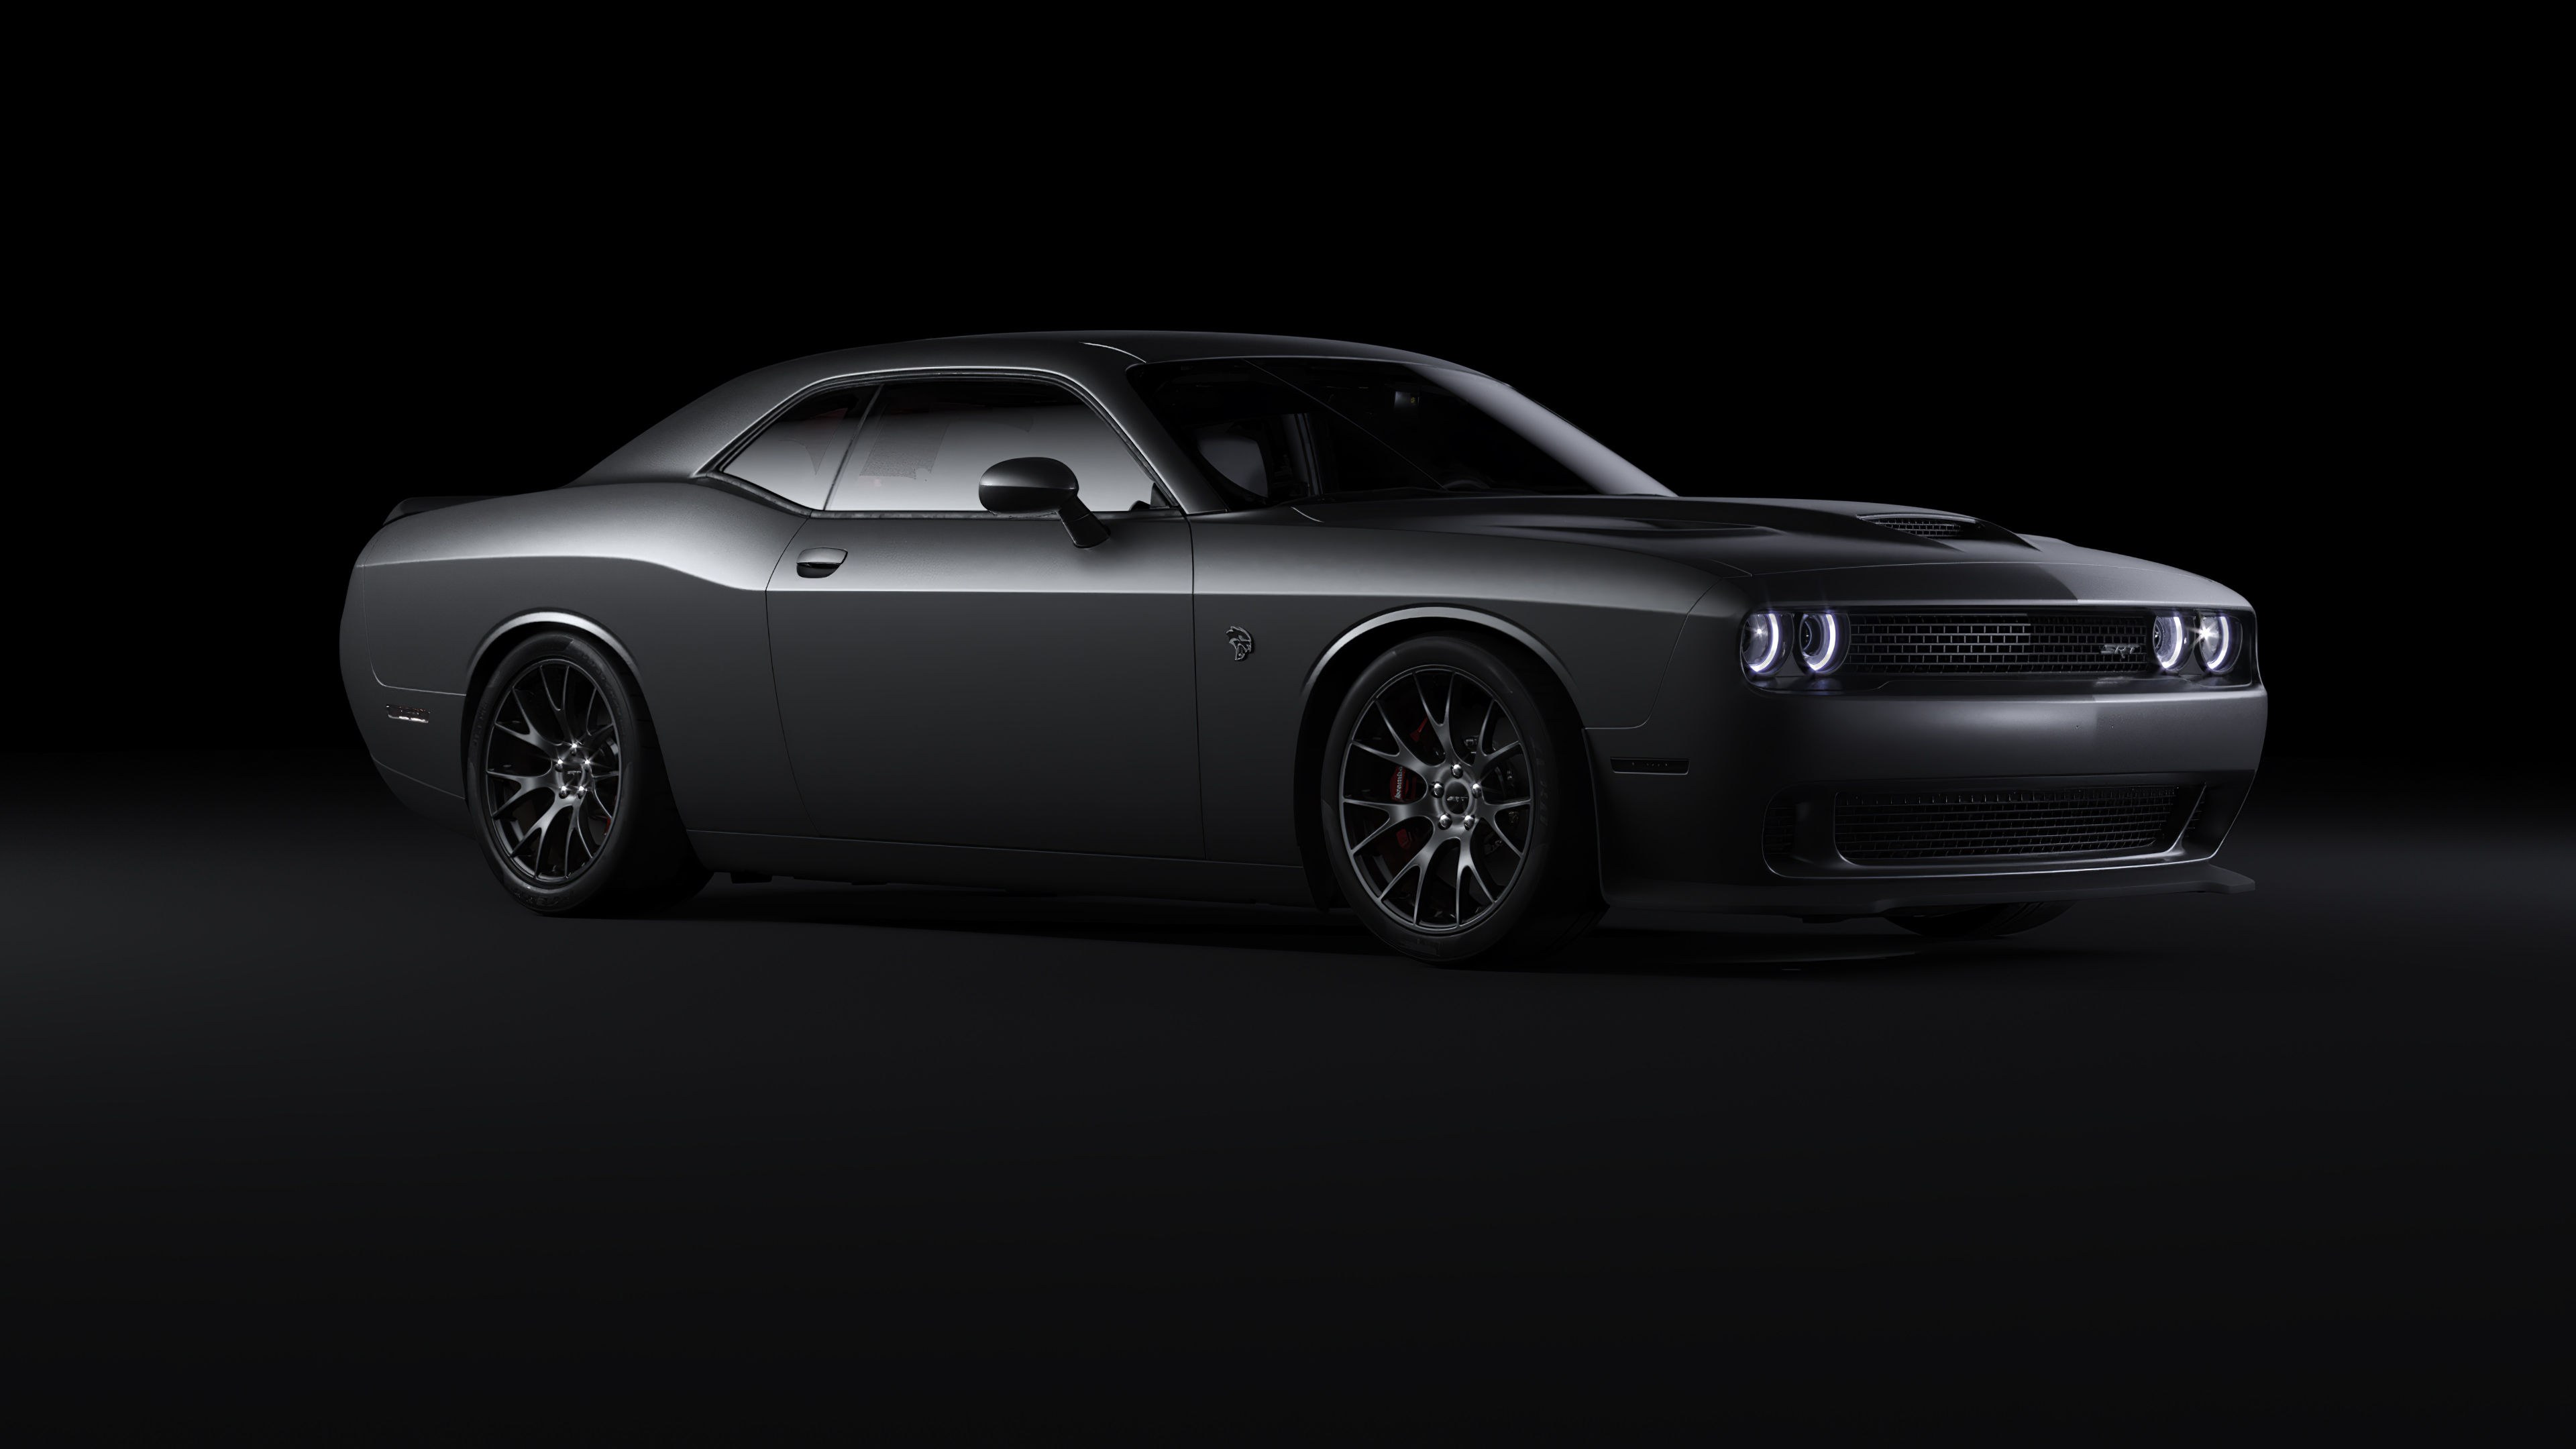 Black Dodge Challenger 4k Hd Cars 4k Wallpapers Images Backgrounds Photos And Pictures